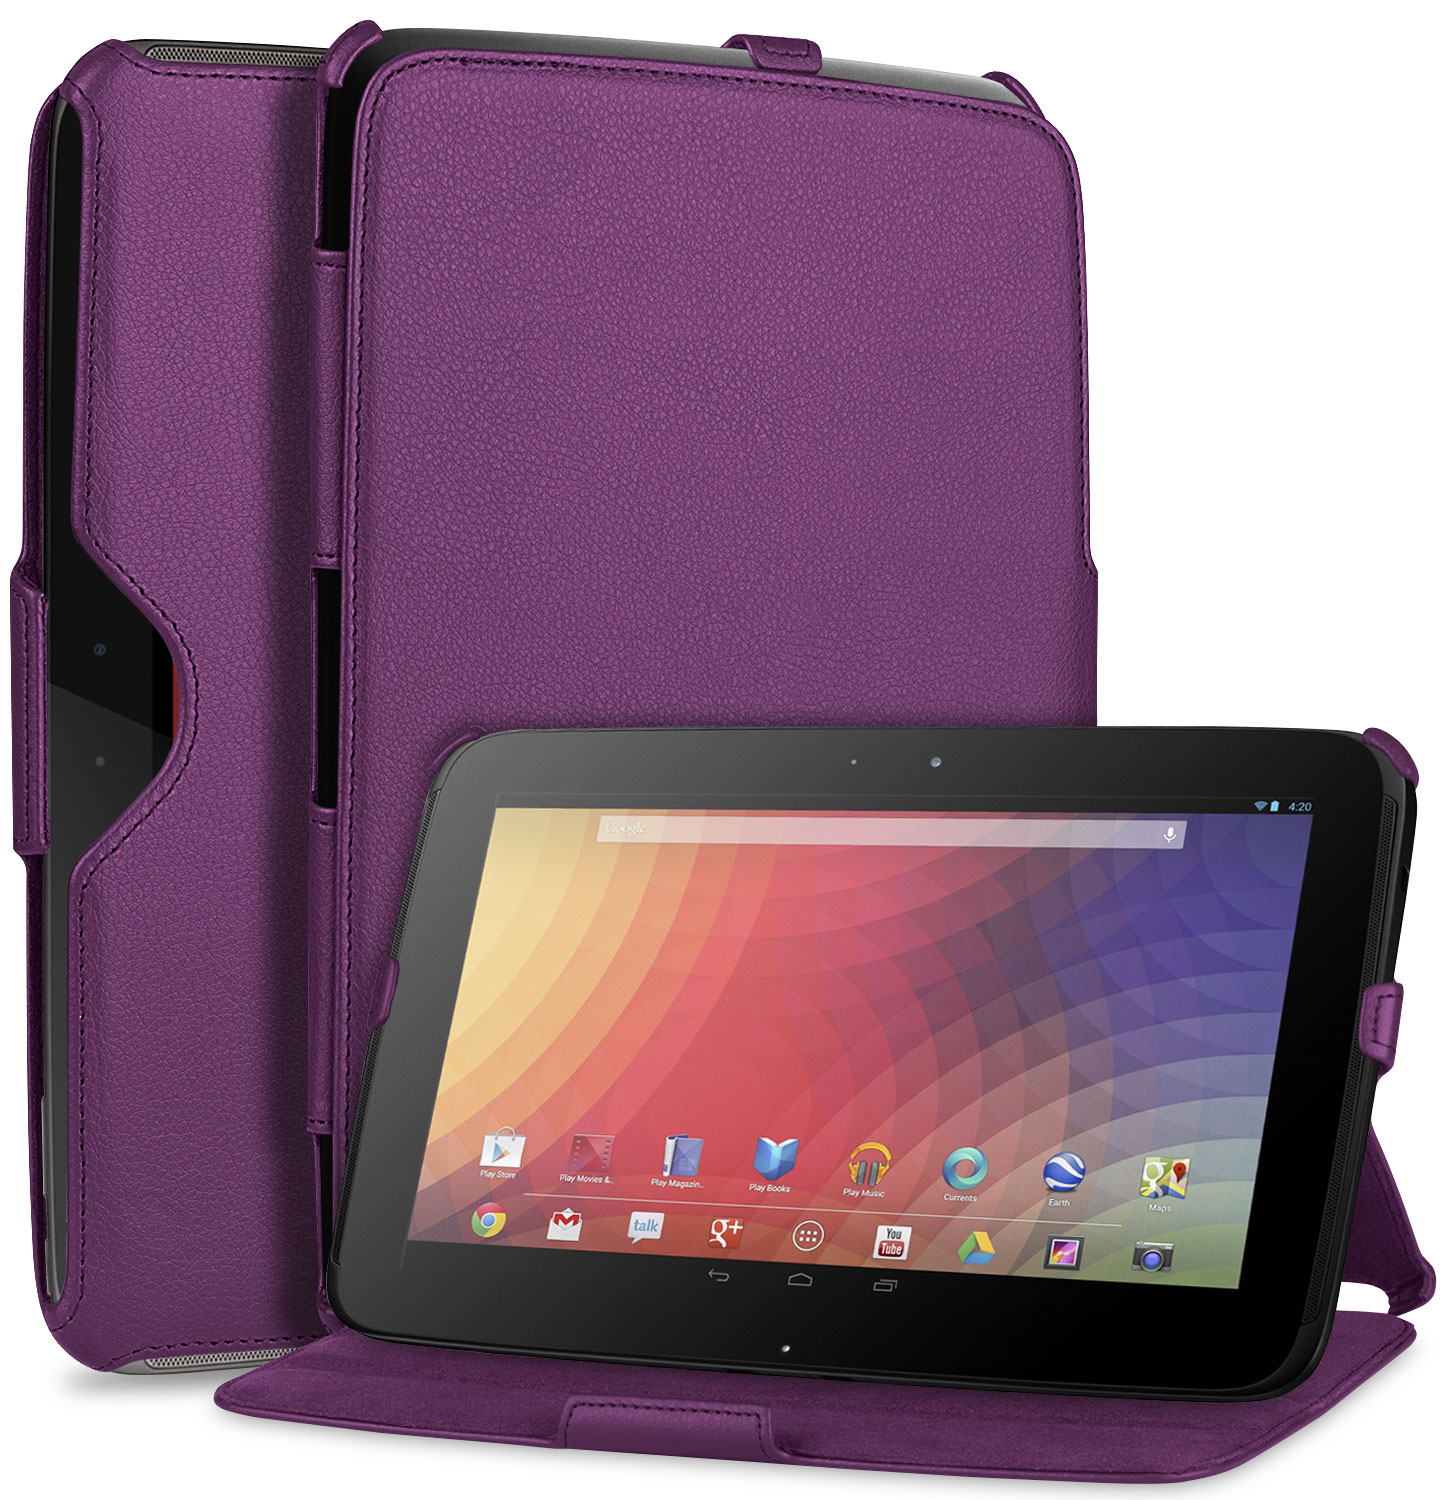 GreatShield VANTAGE Series Slim Fit Leather Folio Case Flip Cover with Multi Angle Stand + Sleep / Wake Function for Google Nexus 10 inch Android Tablet (Purple)